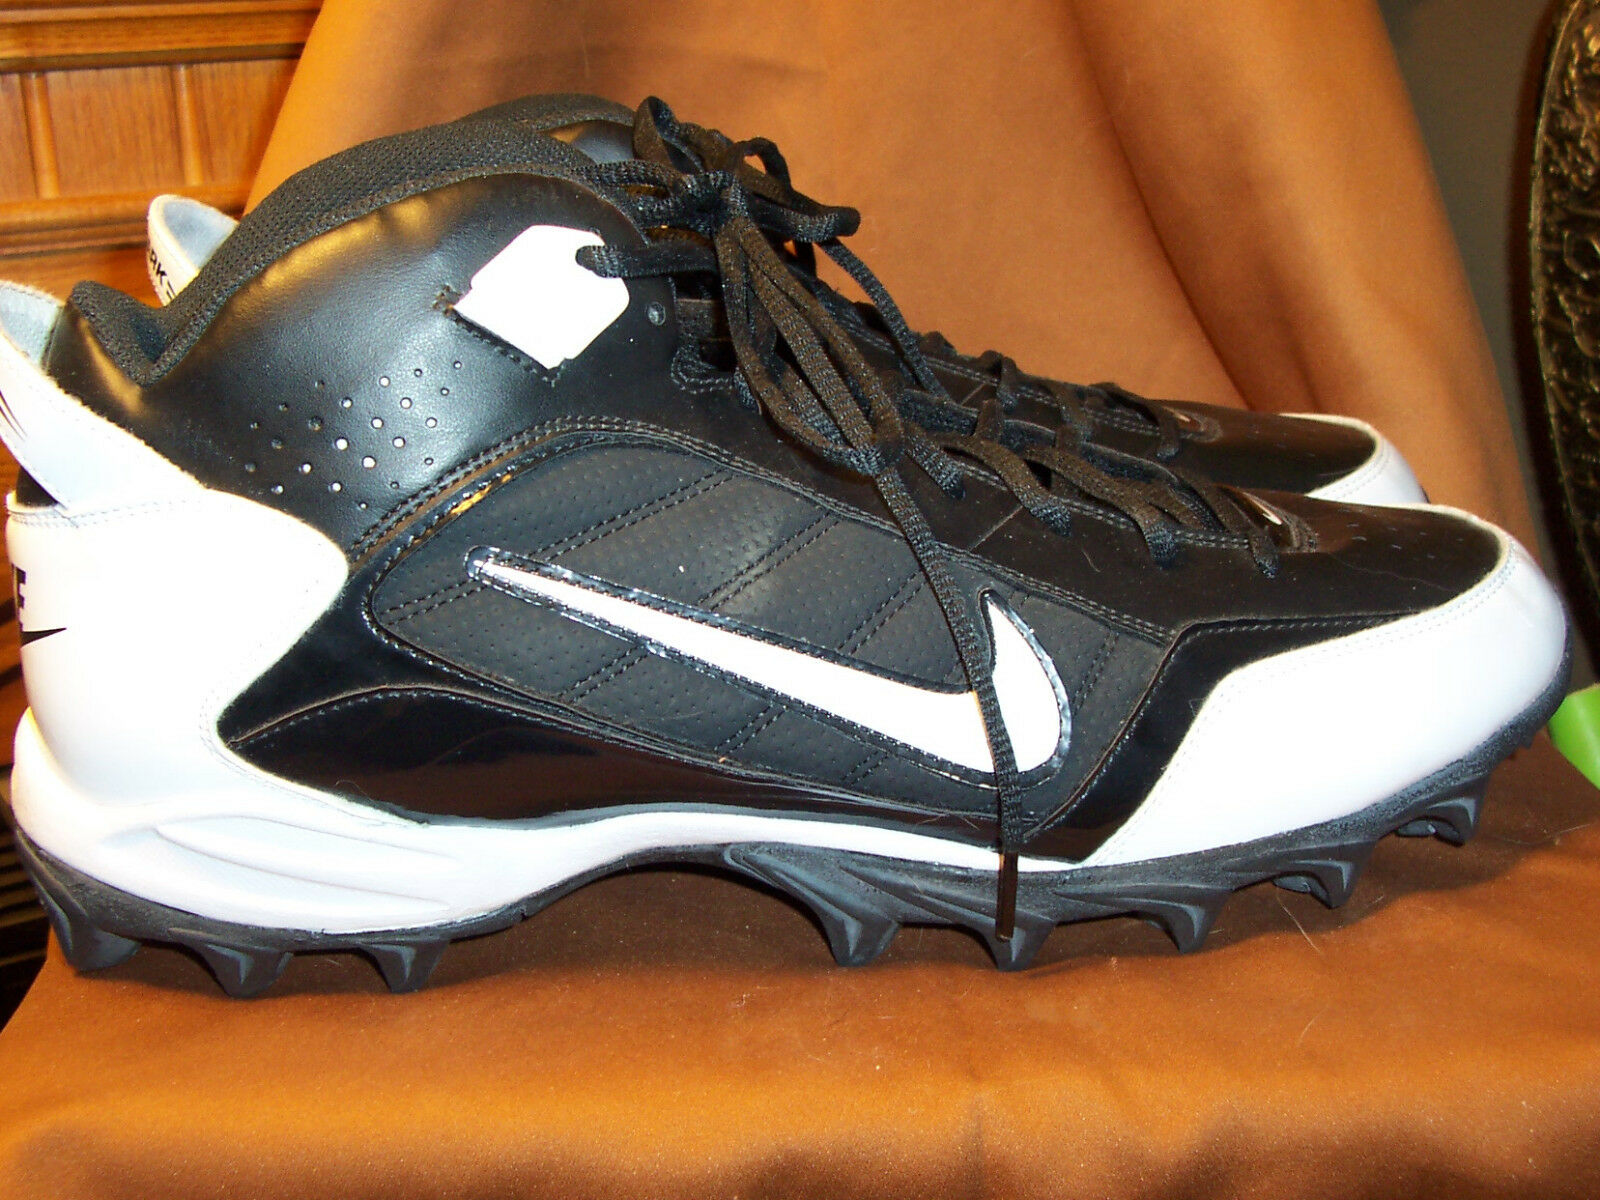 NIKE  LAND SHARK cleated football shoes black/white size 15M pristine condition The most popular shoes for men and women